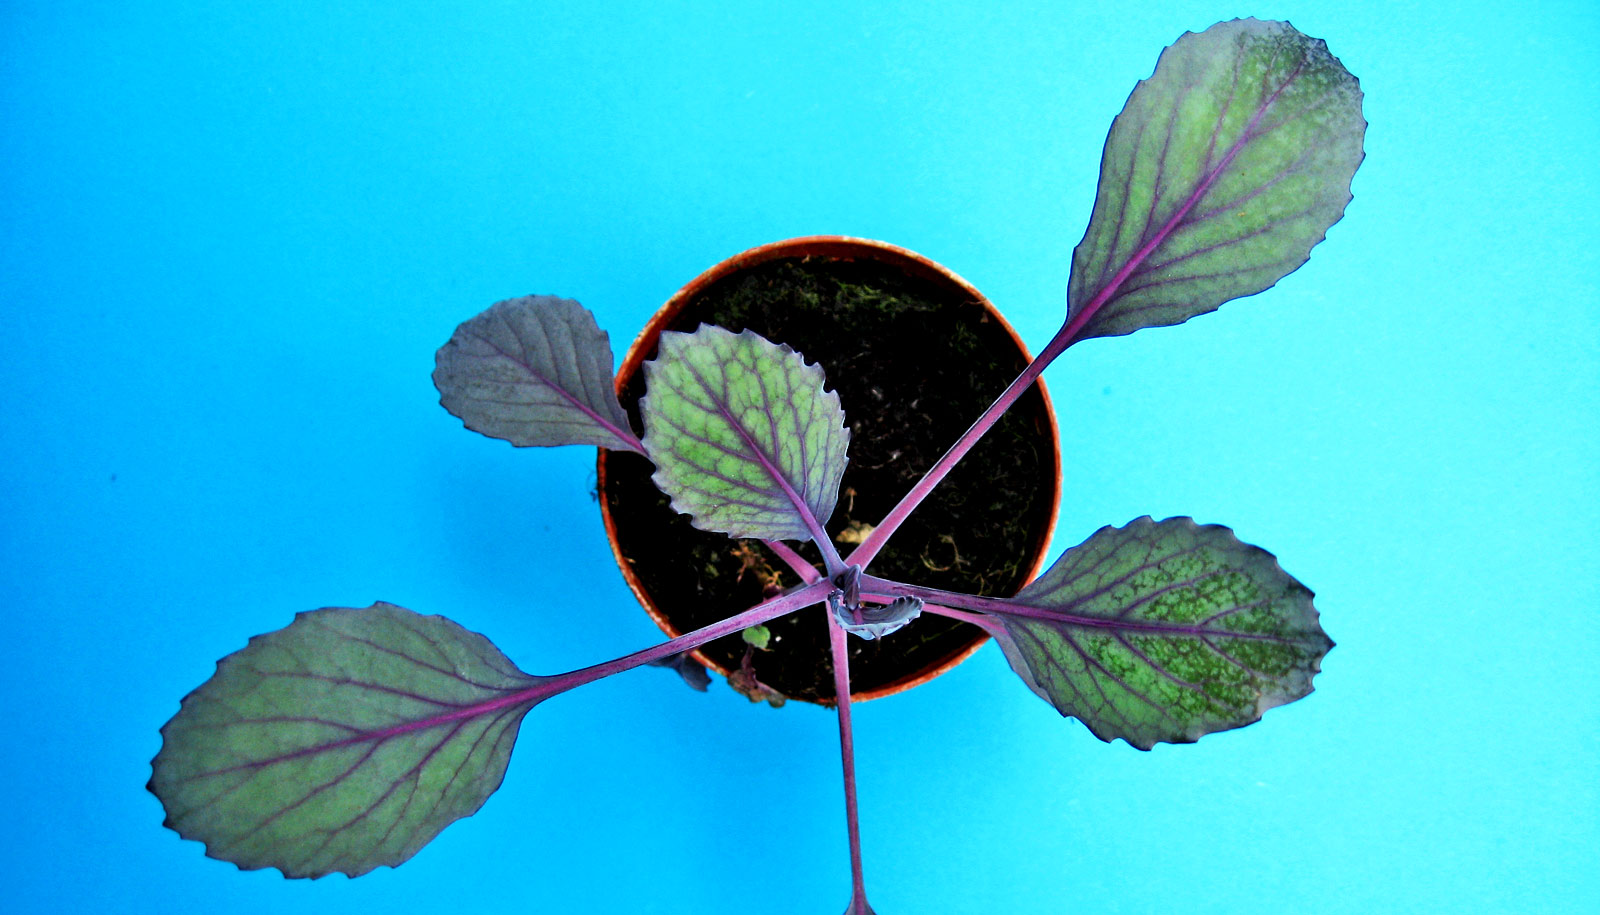 'Family tree' could improve kale and its relatives